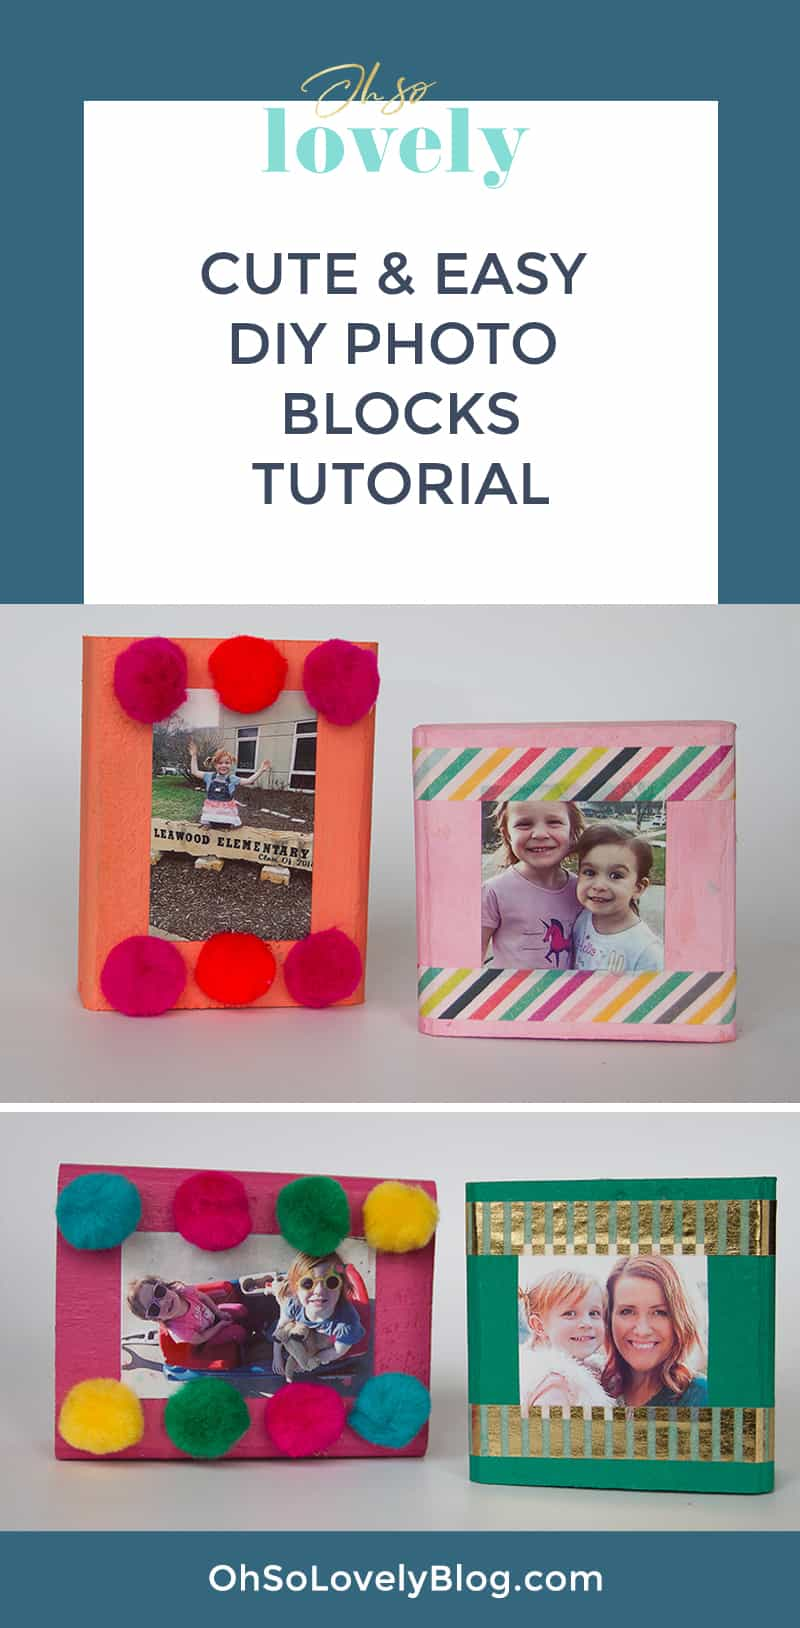 Audrey of Oh So Lovely Blog shares a super easy DIY photo blocks tutorial! Makes a perfect handmade day gift for any occasion.